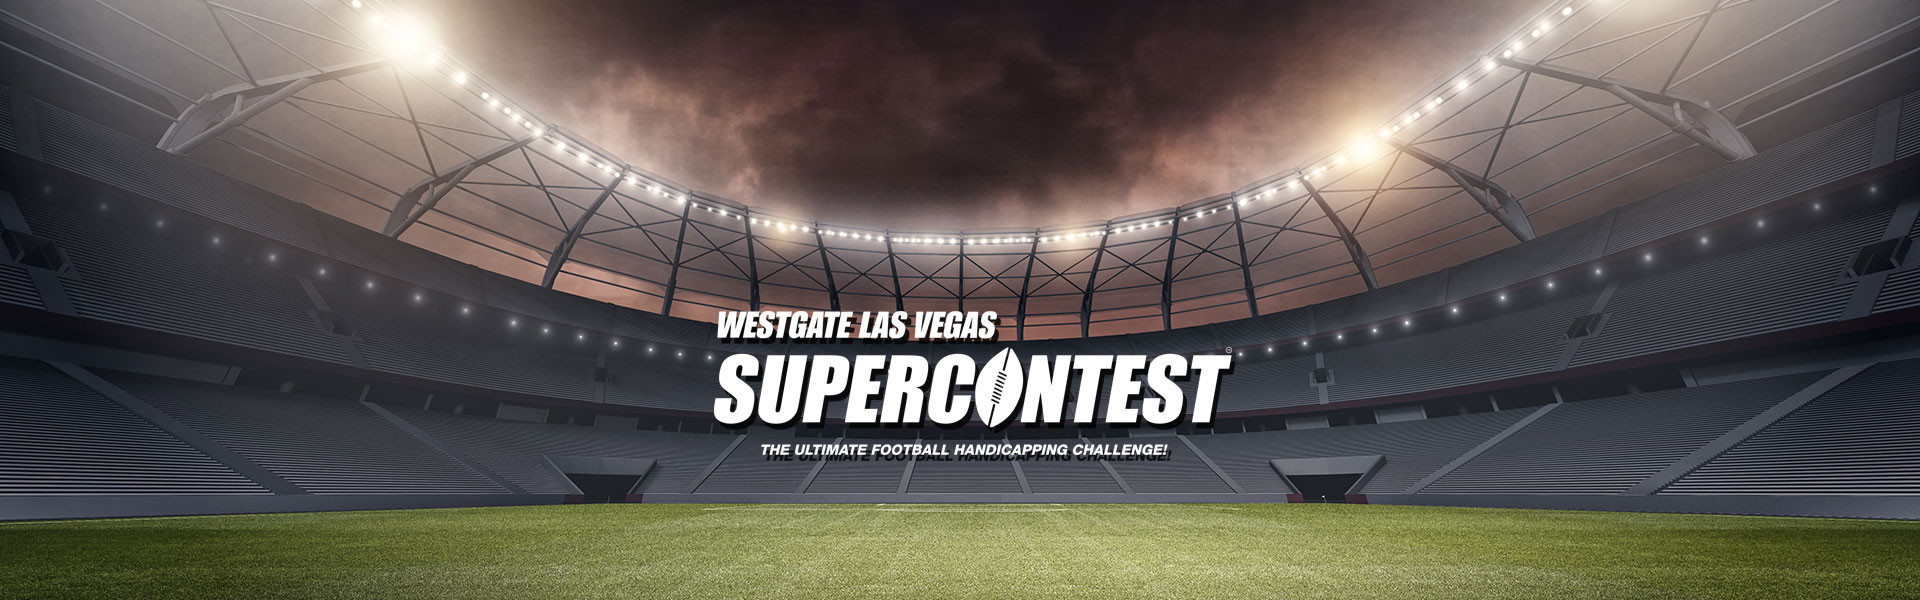 Supercontest Standings at our Las Vegas Hotel and Casino | SuperContest Challenge